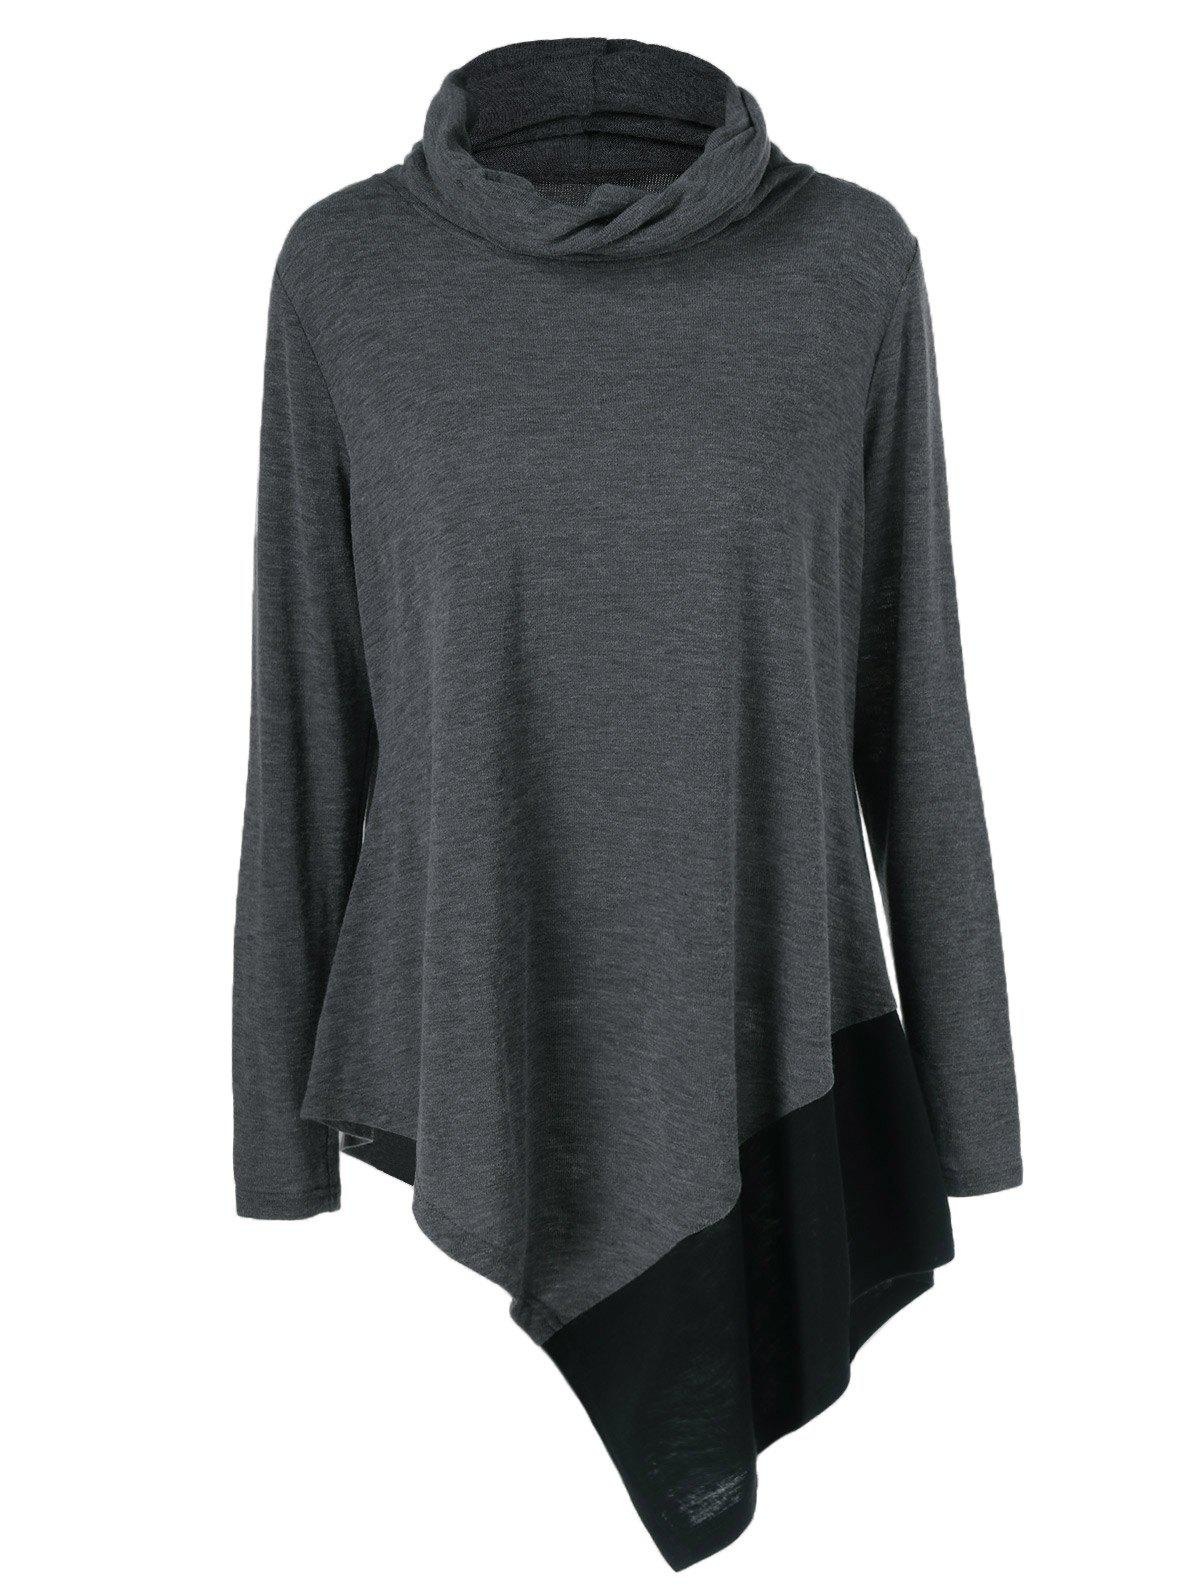 Plus Size Cowl Neck Asymmetrical PulloverWOMEN<br><br>Size: 2XL; Color: BLACK GREY; Material: Cotton Blends,Polyester,Spandex; Shirt Length: Long; Sleeve Length: Full; Collar: Cowl Neck; Style: Casual; Season: Fall,Spring; Pattern Type: Patchwork; Weight: 0.380kg; Package Contents: 1 x Pullover;